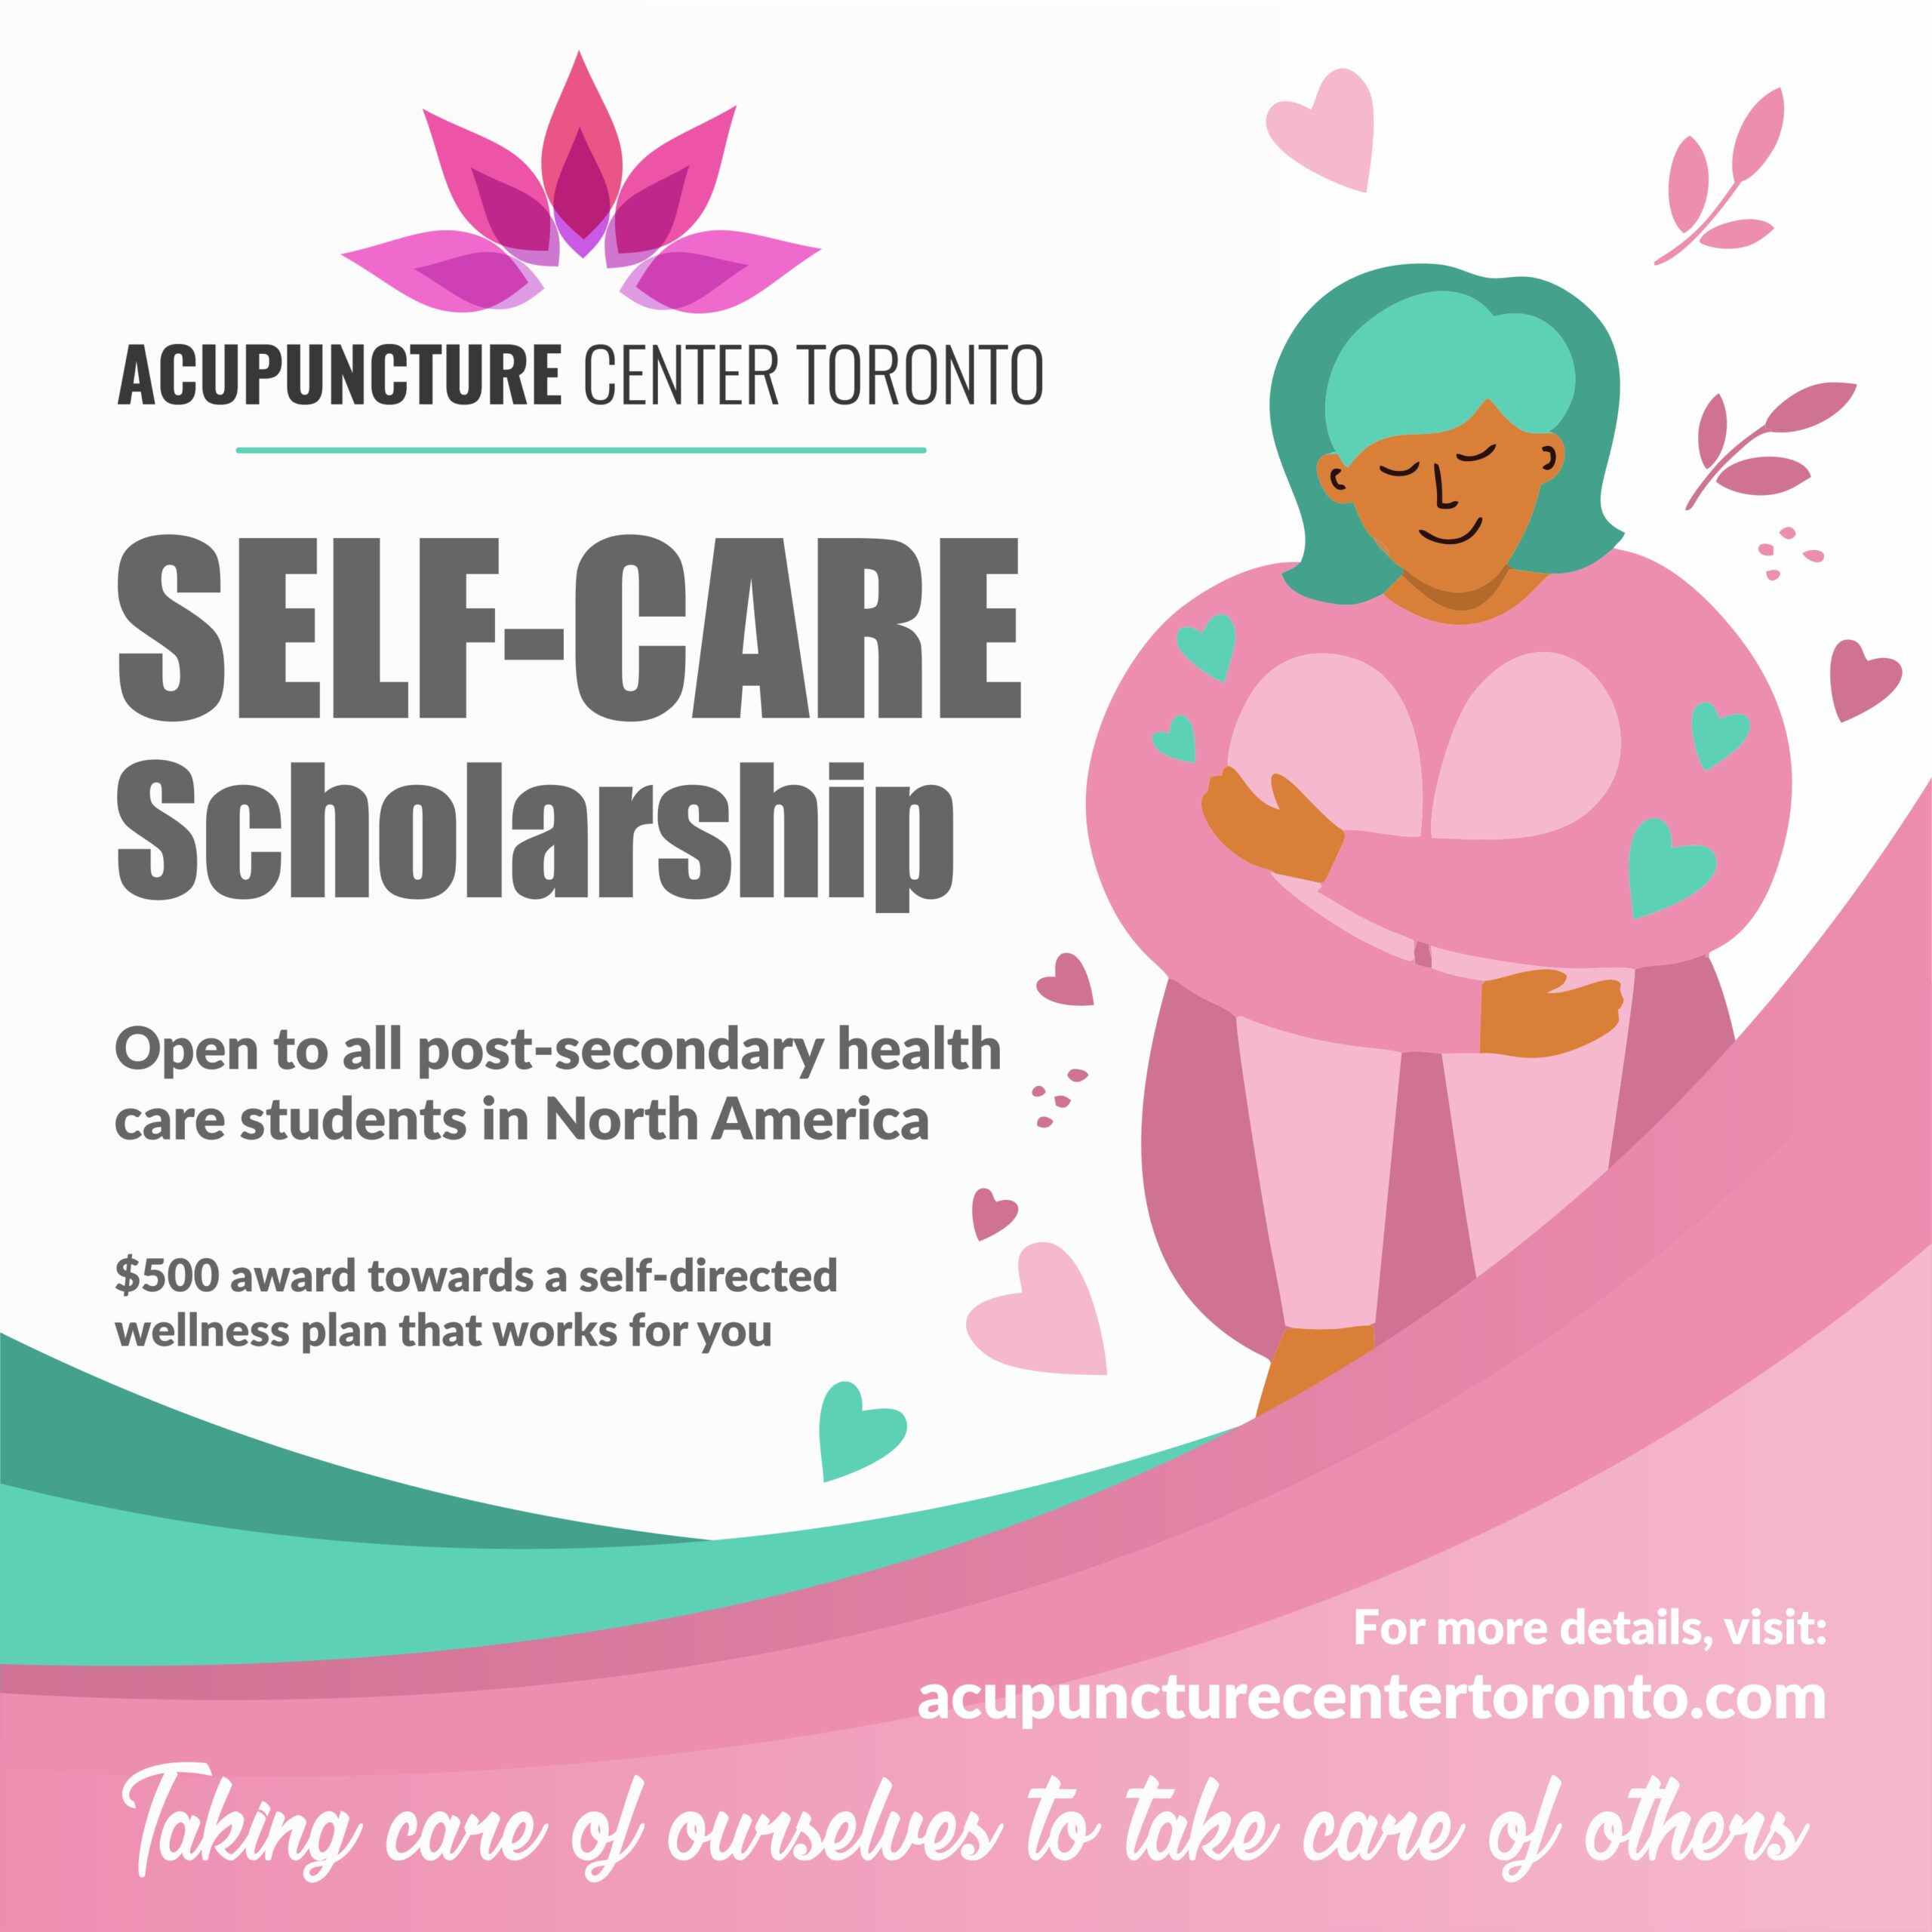 Acupuncture Center Toronto awarding $500 open to healthcare provider students